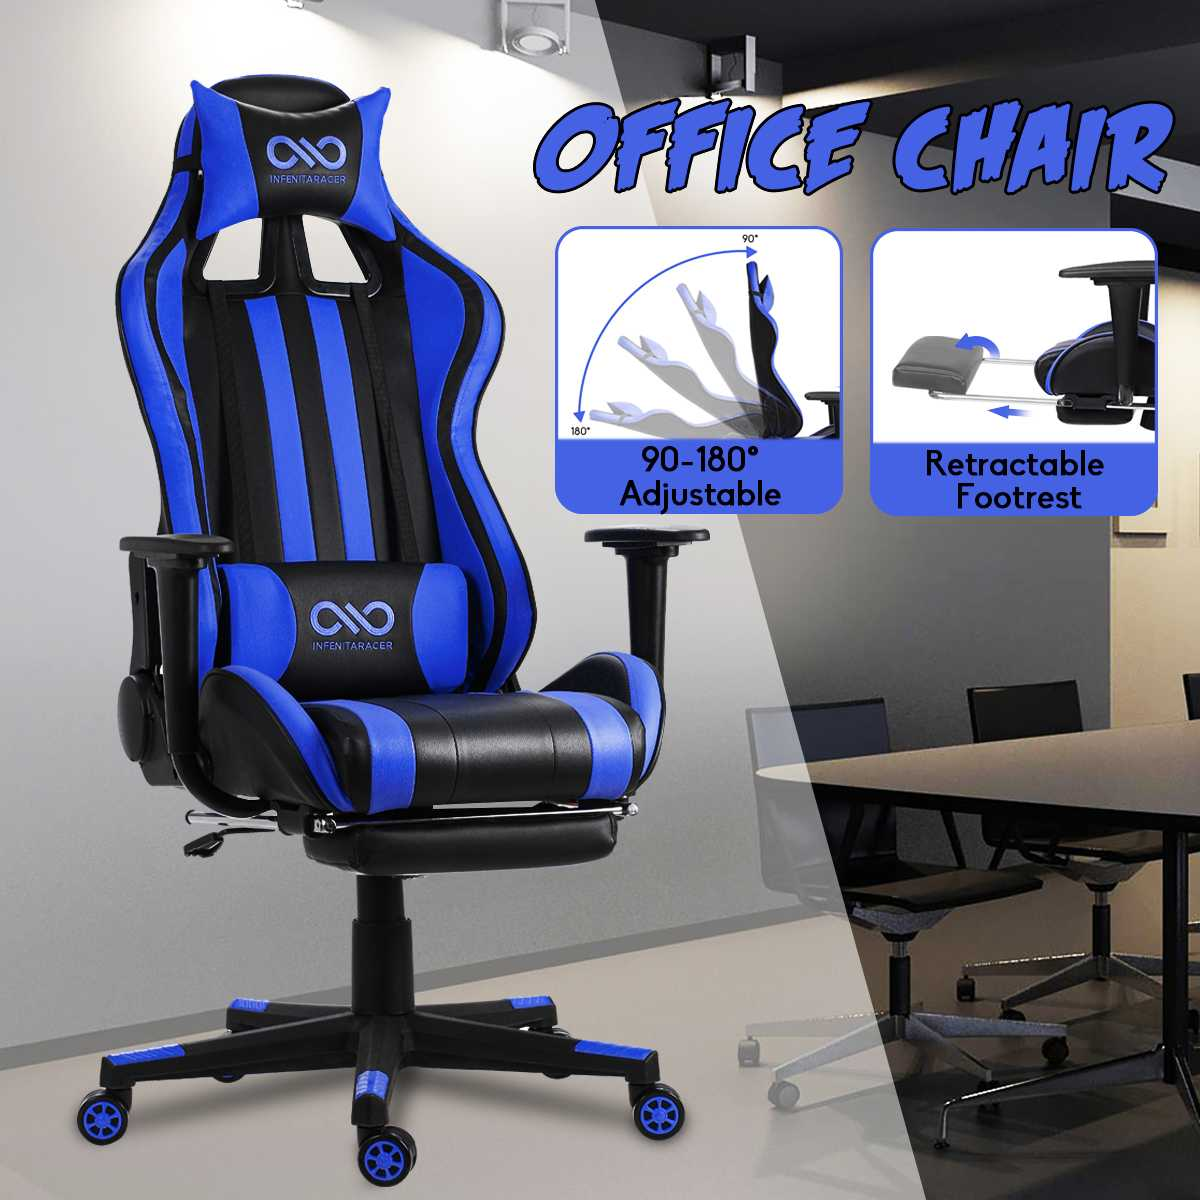 H0a2e494c9a9646a192333927b5ba58ccC - Office Gaming Chair PVC Household Armchair Lift and Swivel Function Ergonomic Office Computer Chair Wcg Gamer Chairs